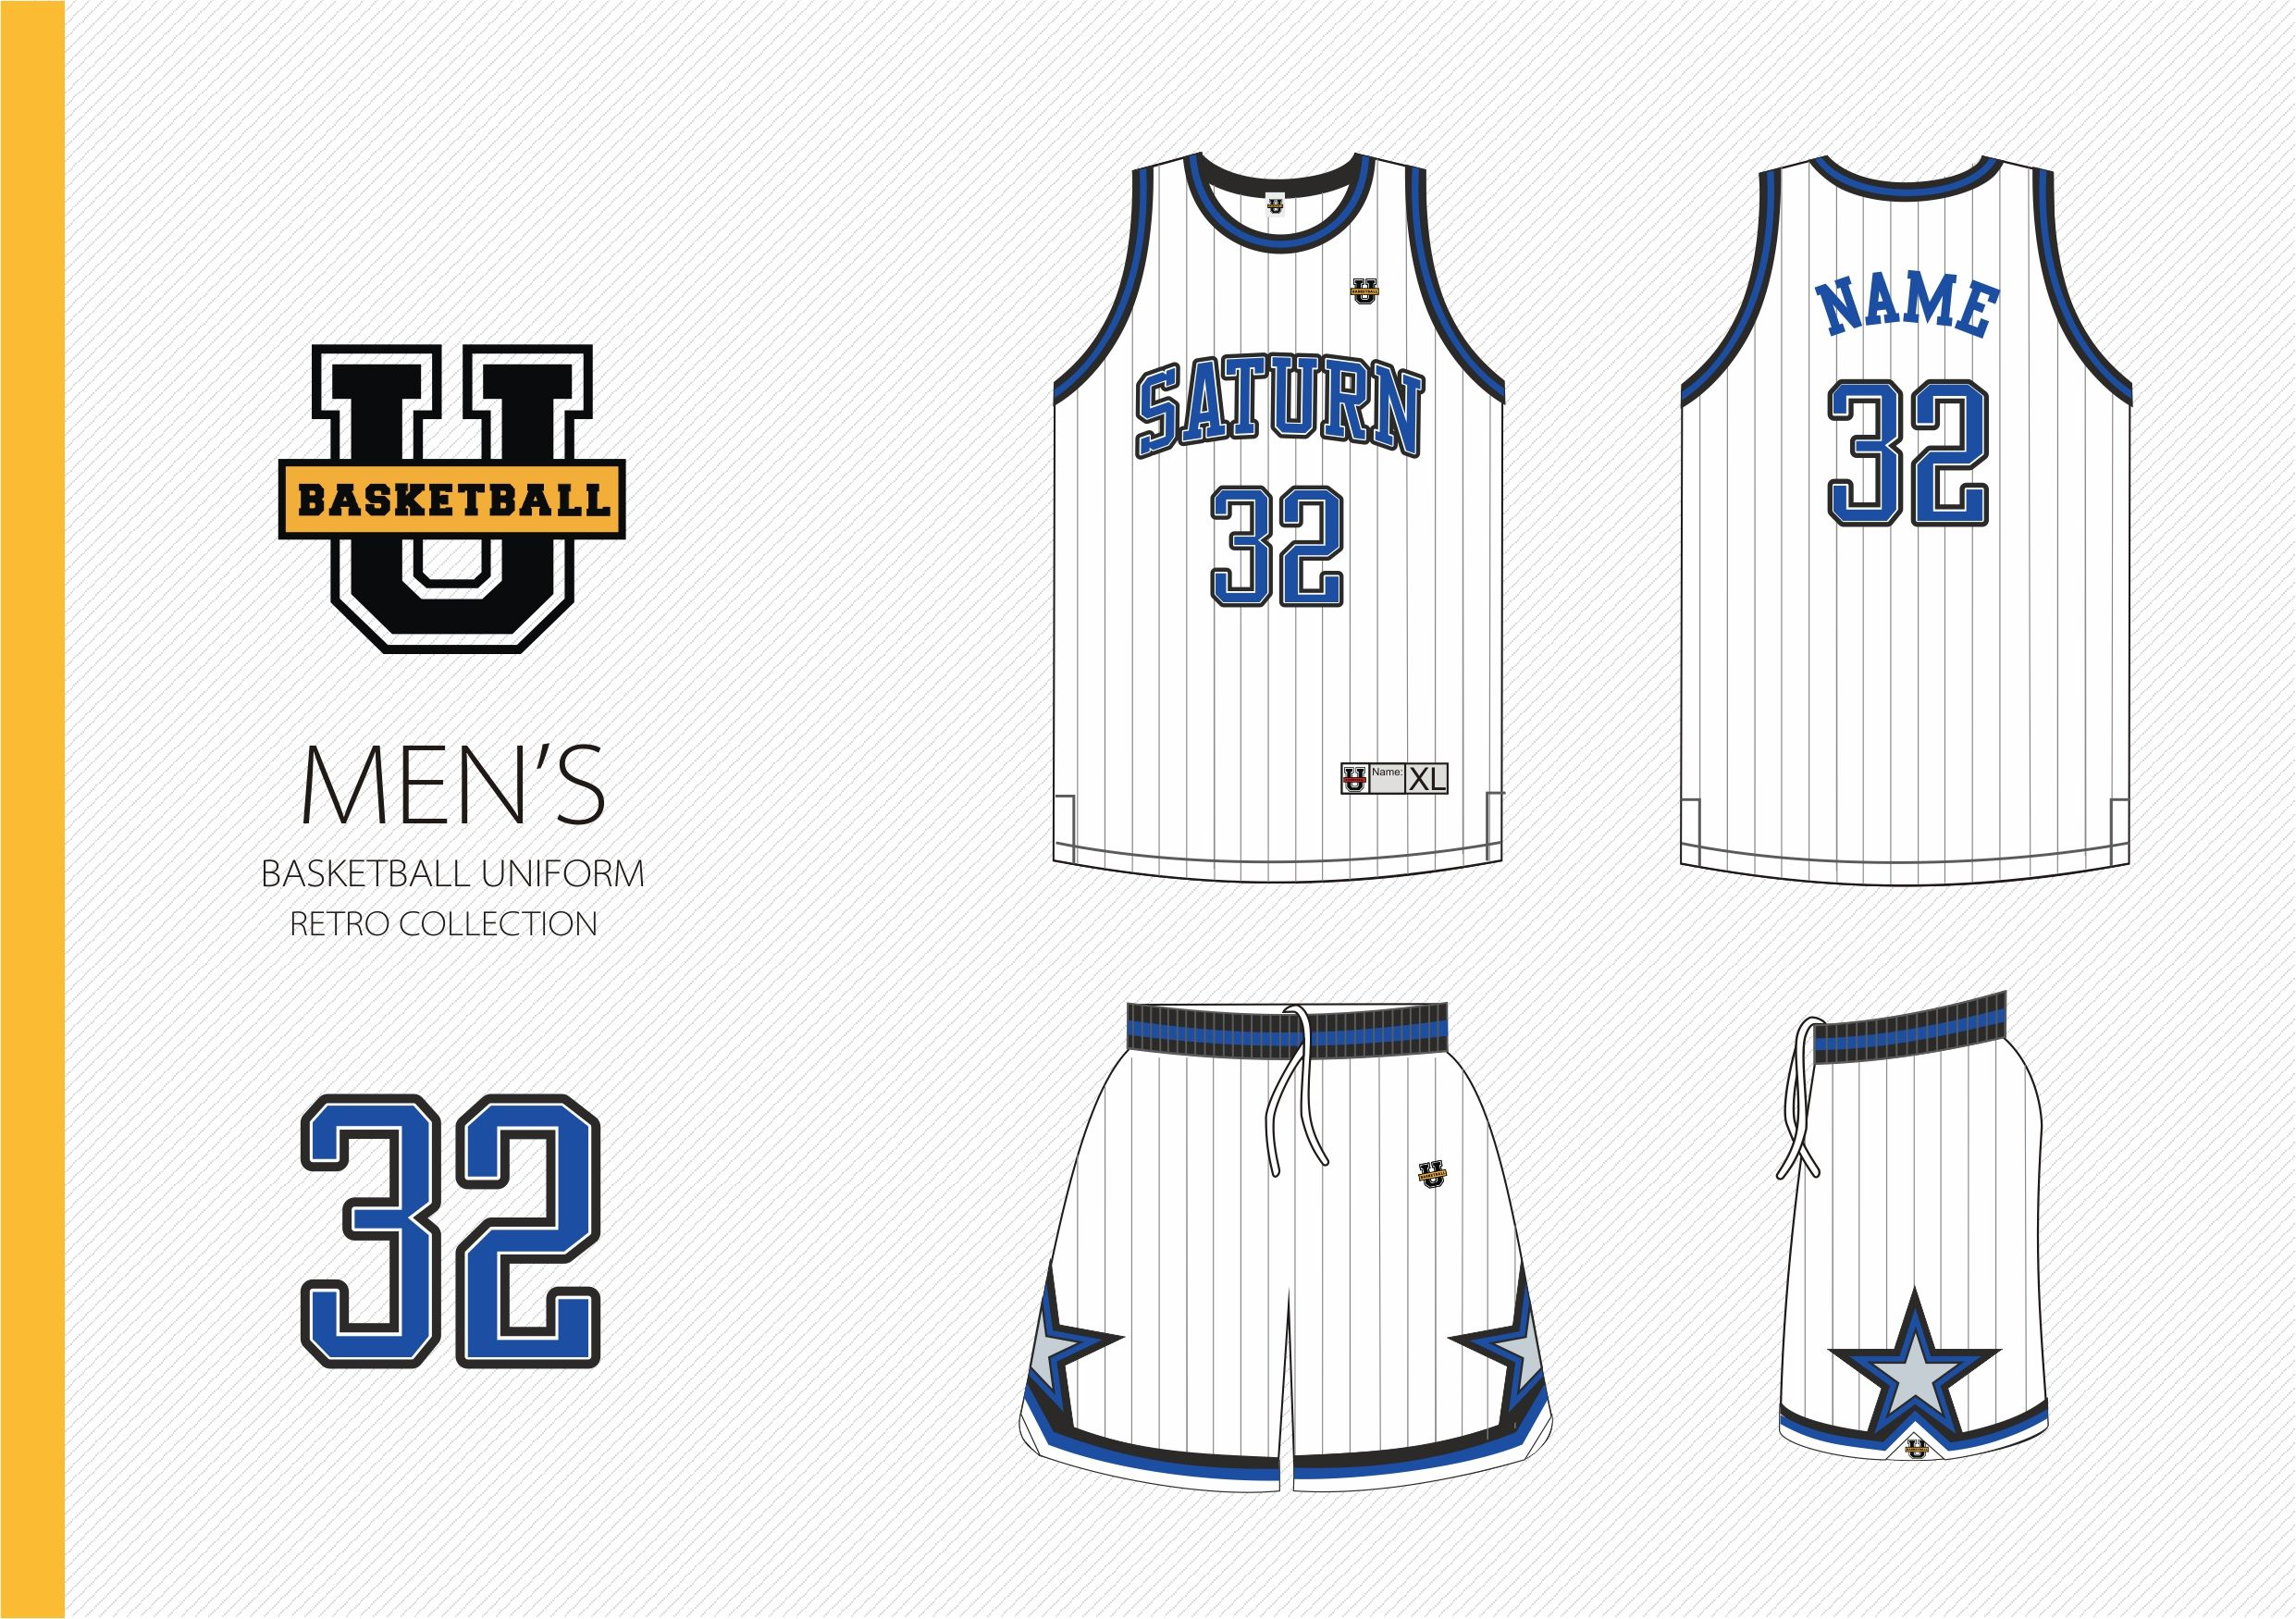 ae40290b531 Custom Basketball Uniform UB Retro Order - min 10 sets - 59.90  + paypal +  production time 4 weeks + worldwide delivery